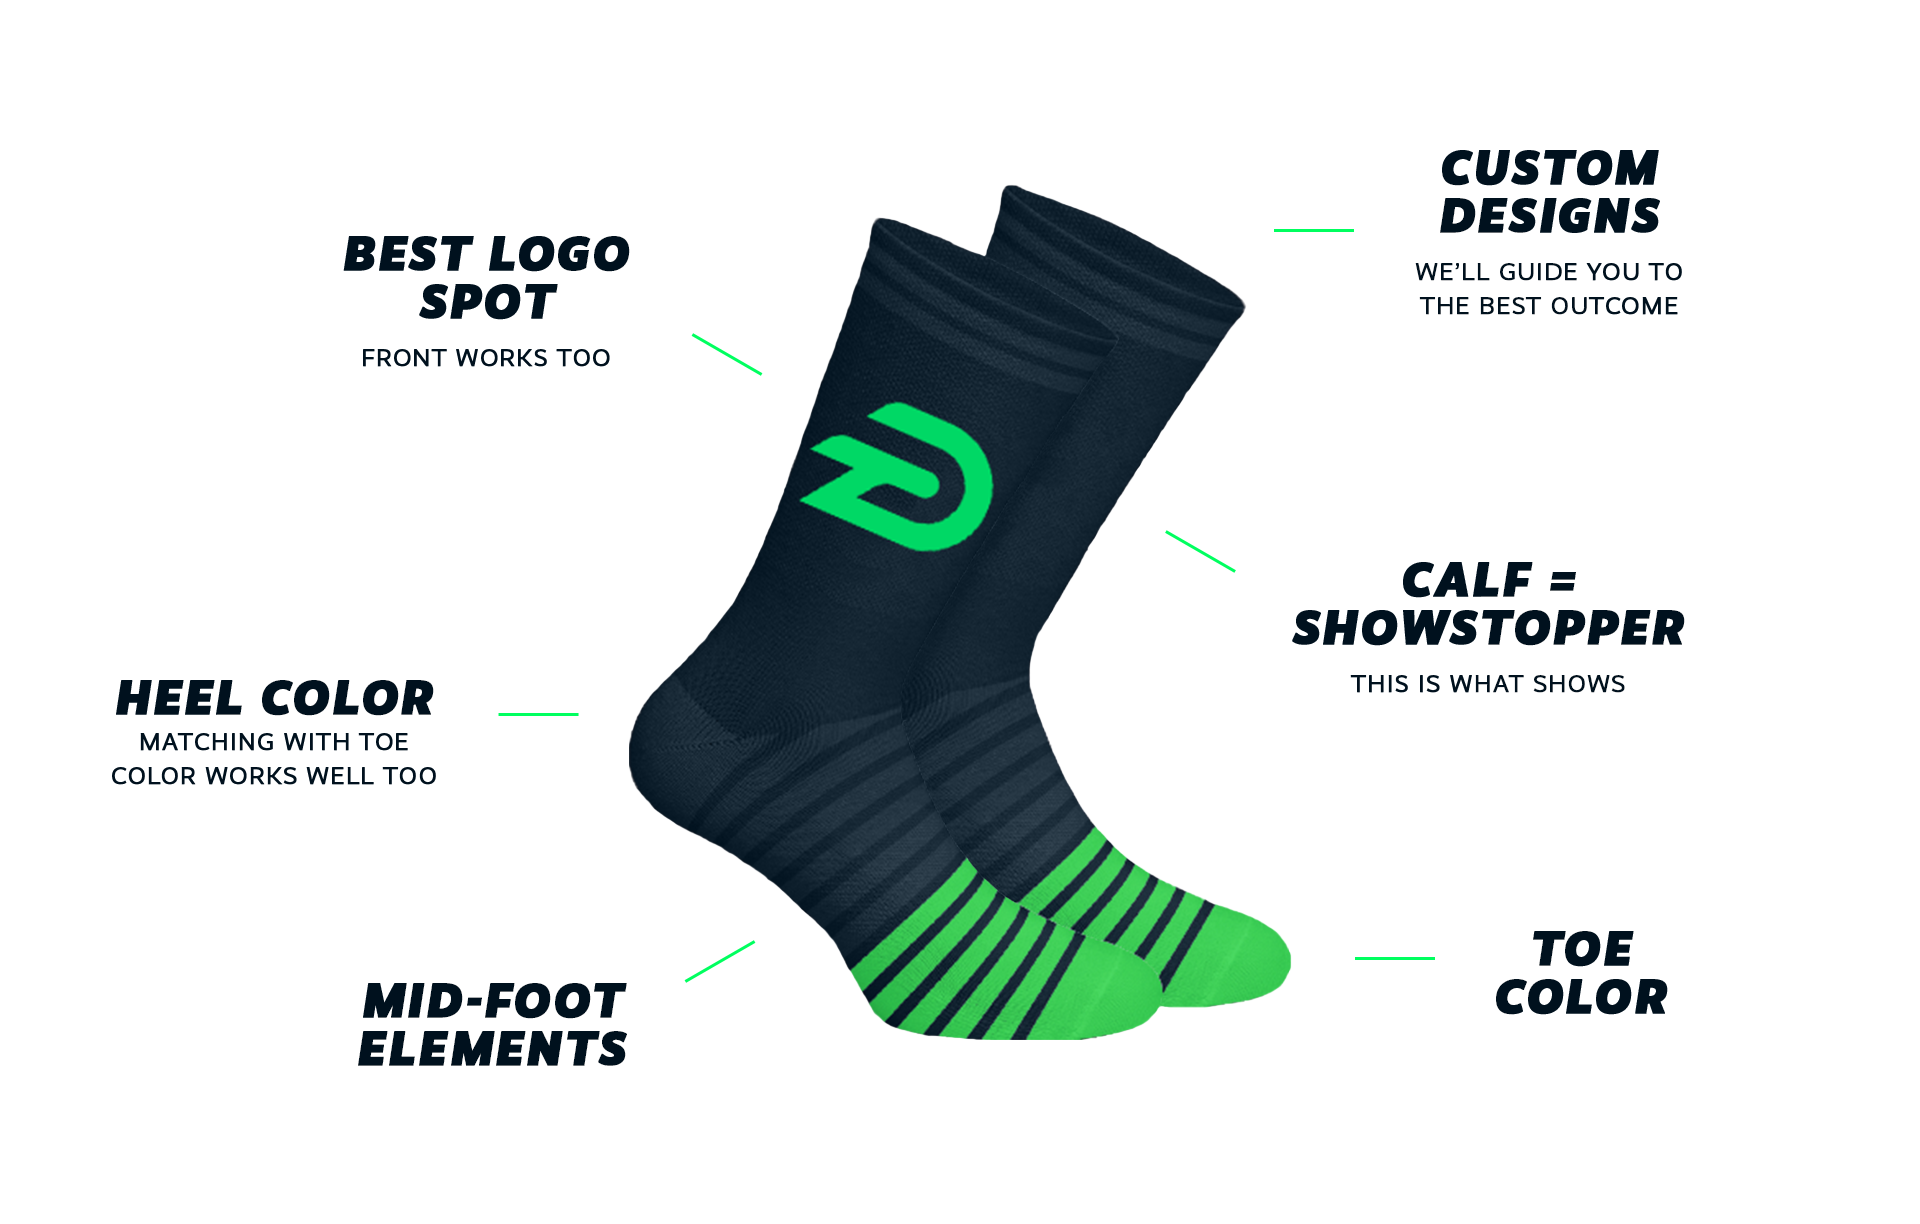 A mock up custom sock design sample branded with logo, colors, and messaging